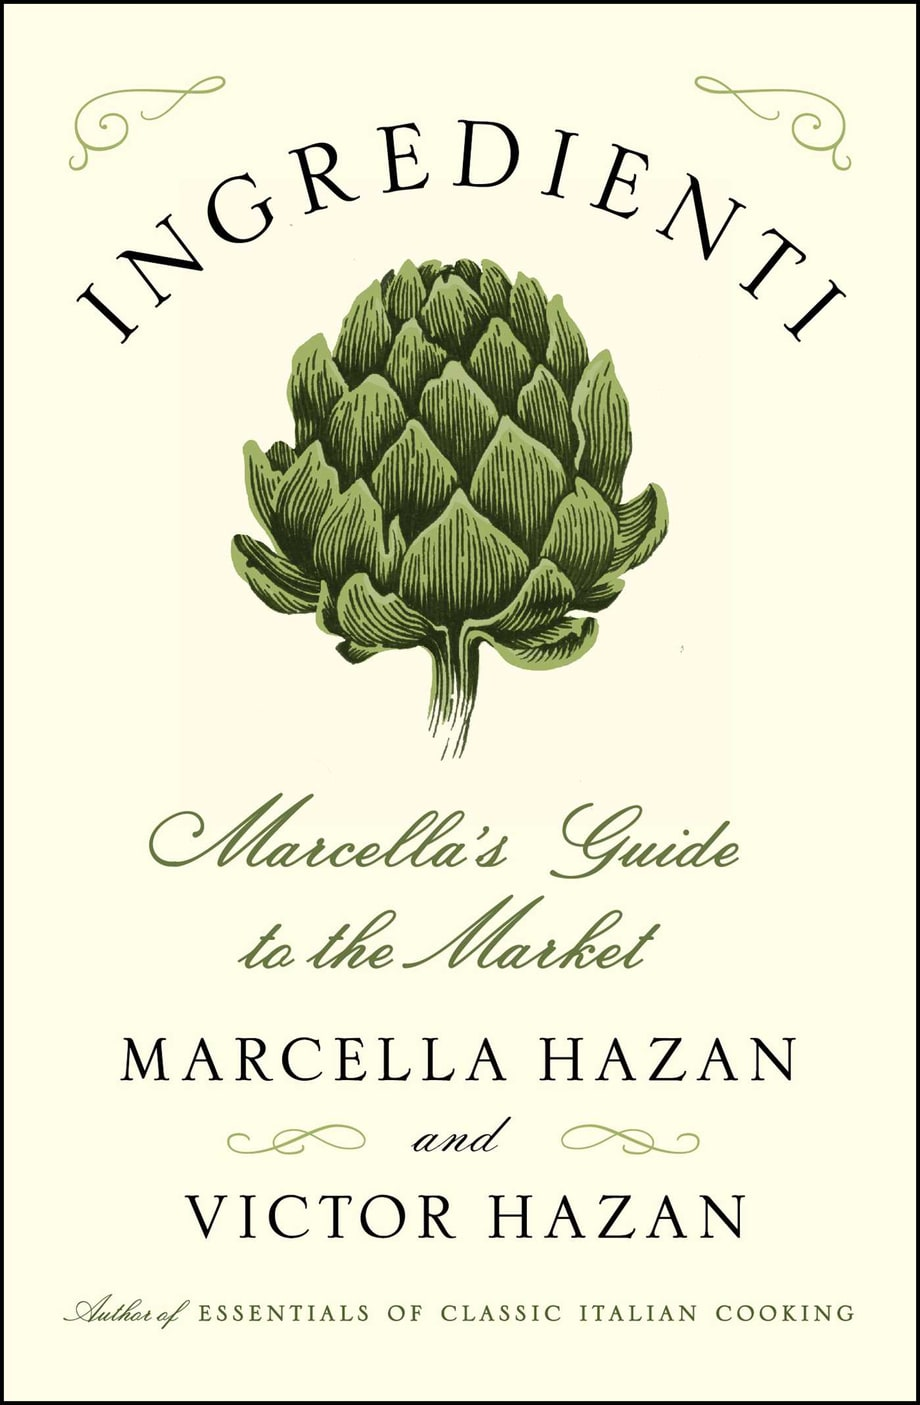 Ingredienti: Marcella's Guide to the Market, Marcella Hazan and Victor Hazan